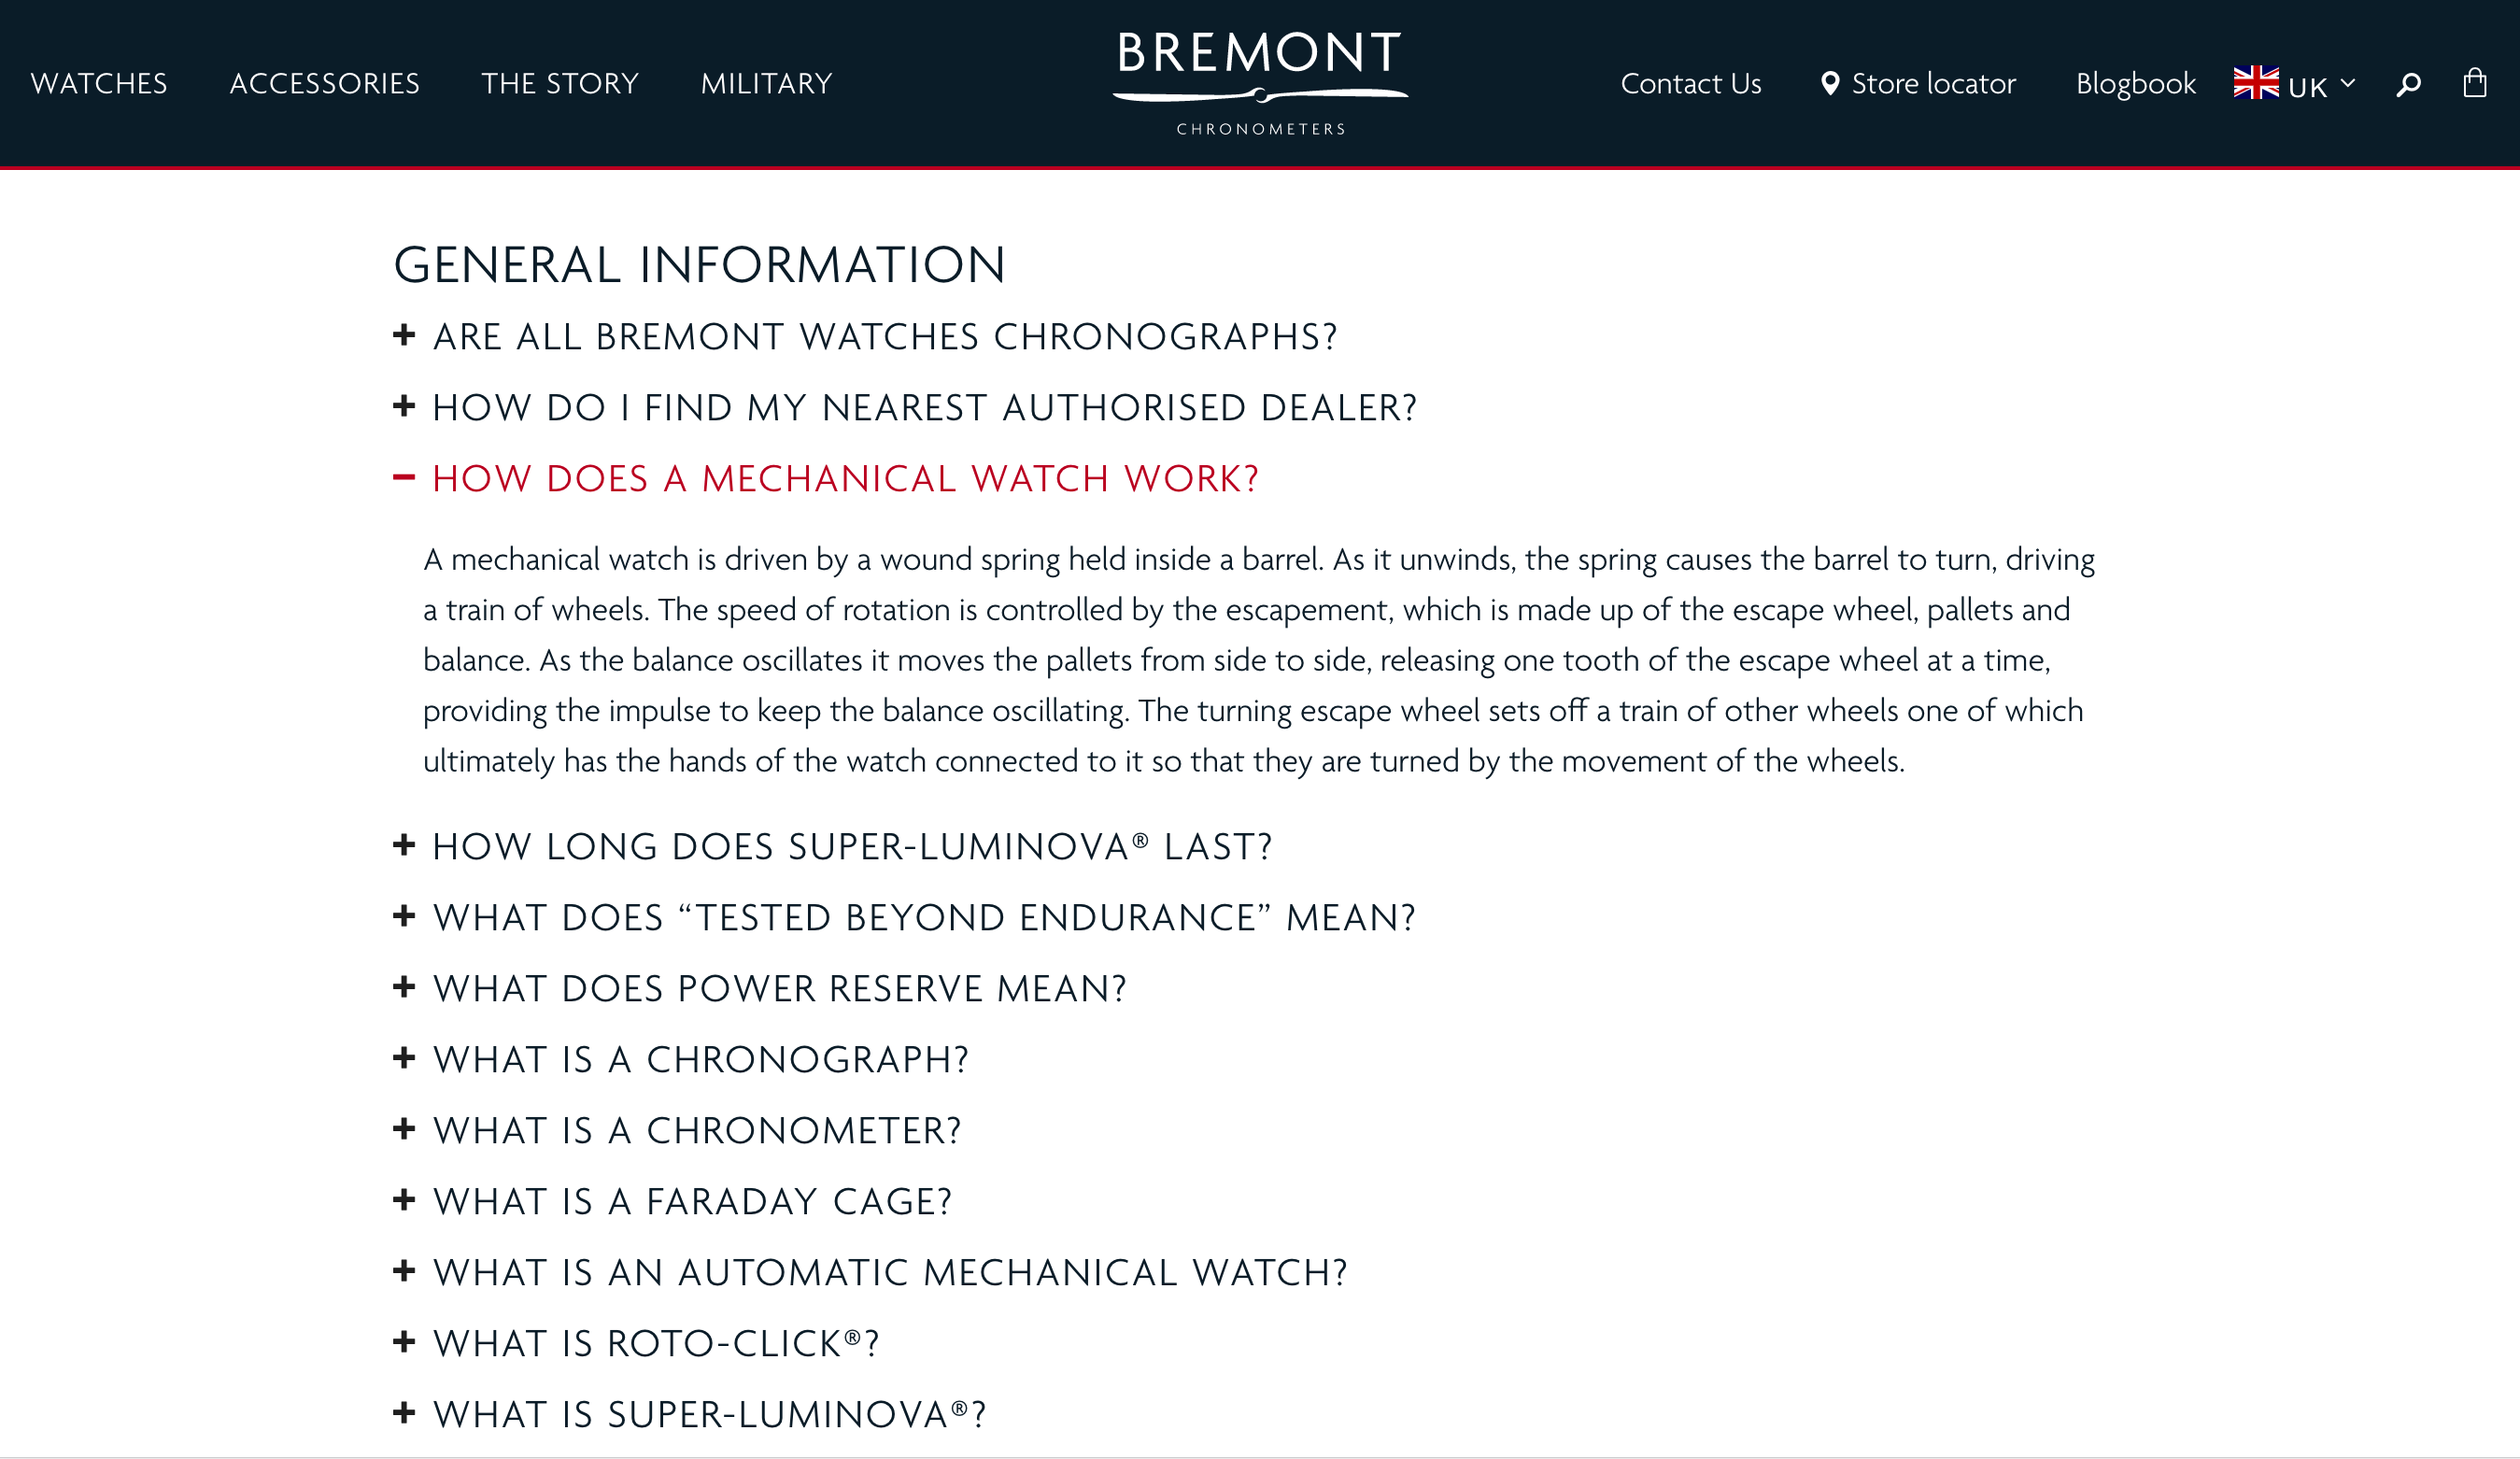 Screen shot of watchmakers Bremont's F A Q page showing quality questions and answers